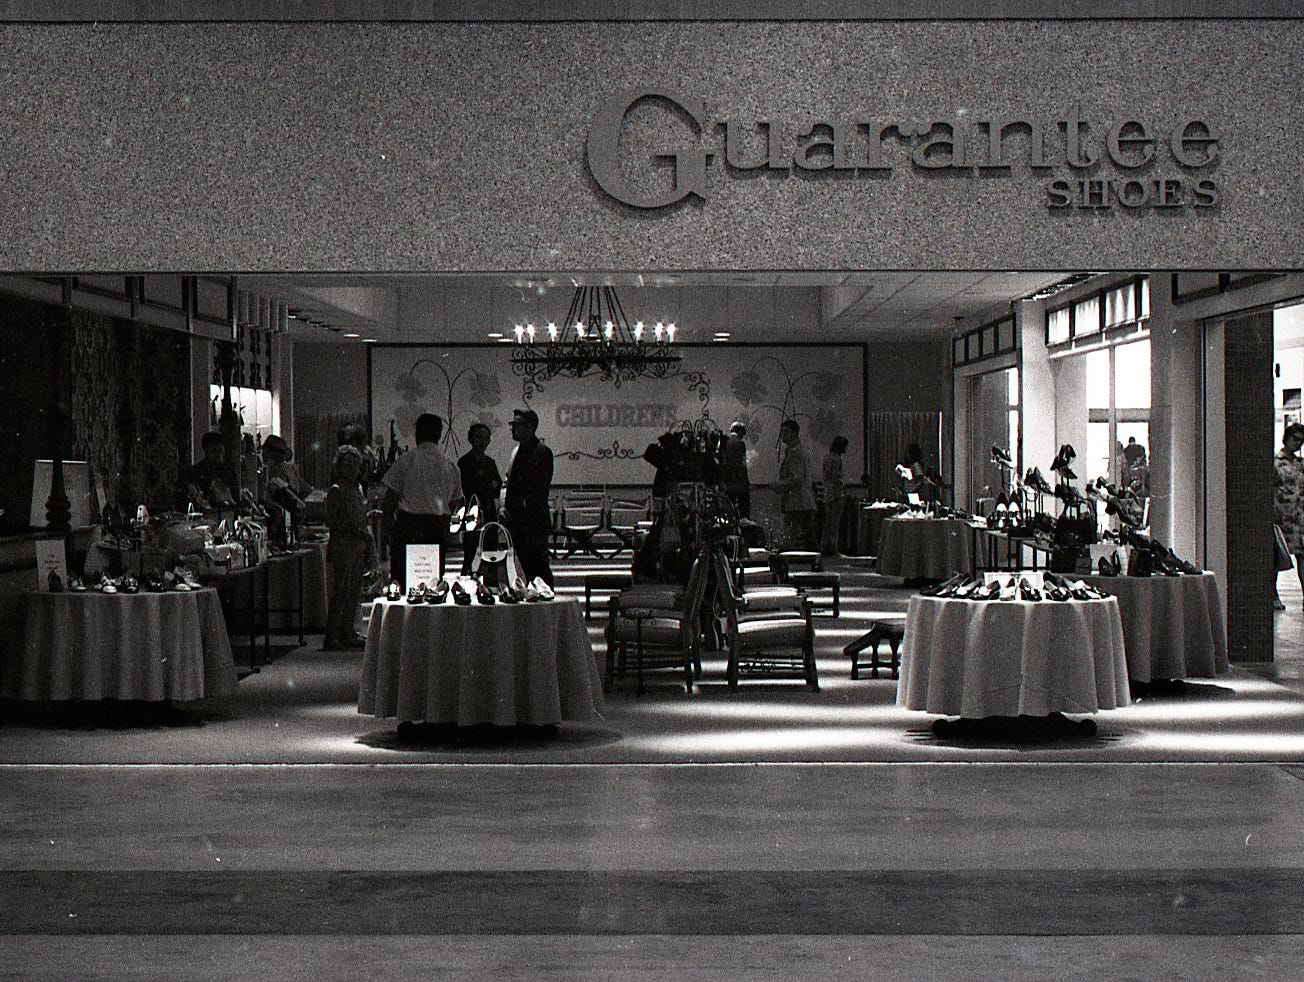 Guarantee Shoes was one of the tenants in Corpus Christi's Padre Staples Mall when it opened in July 1970.